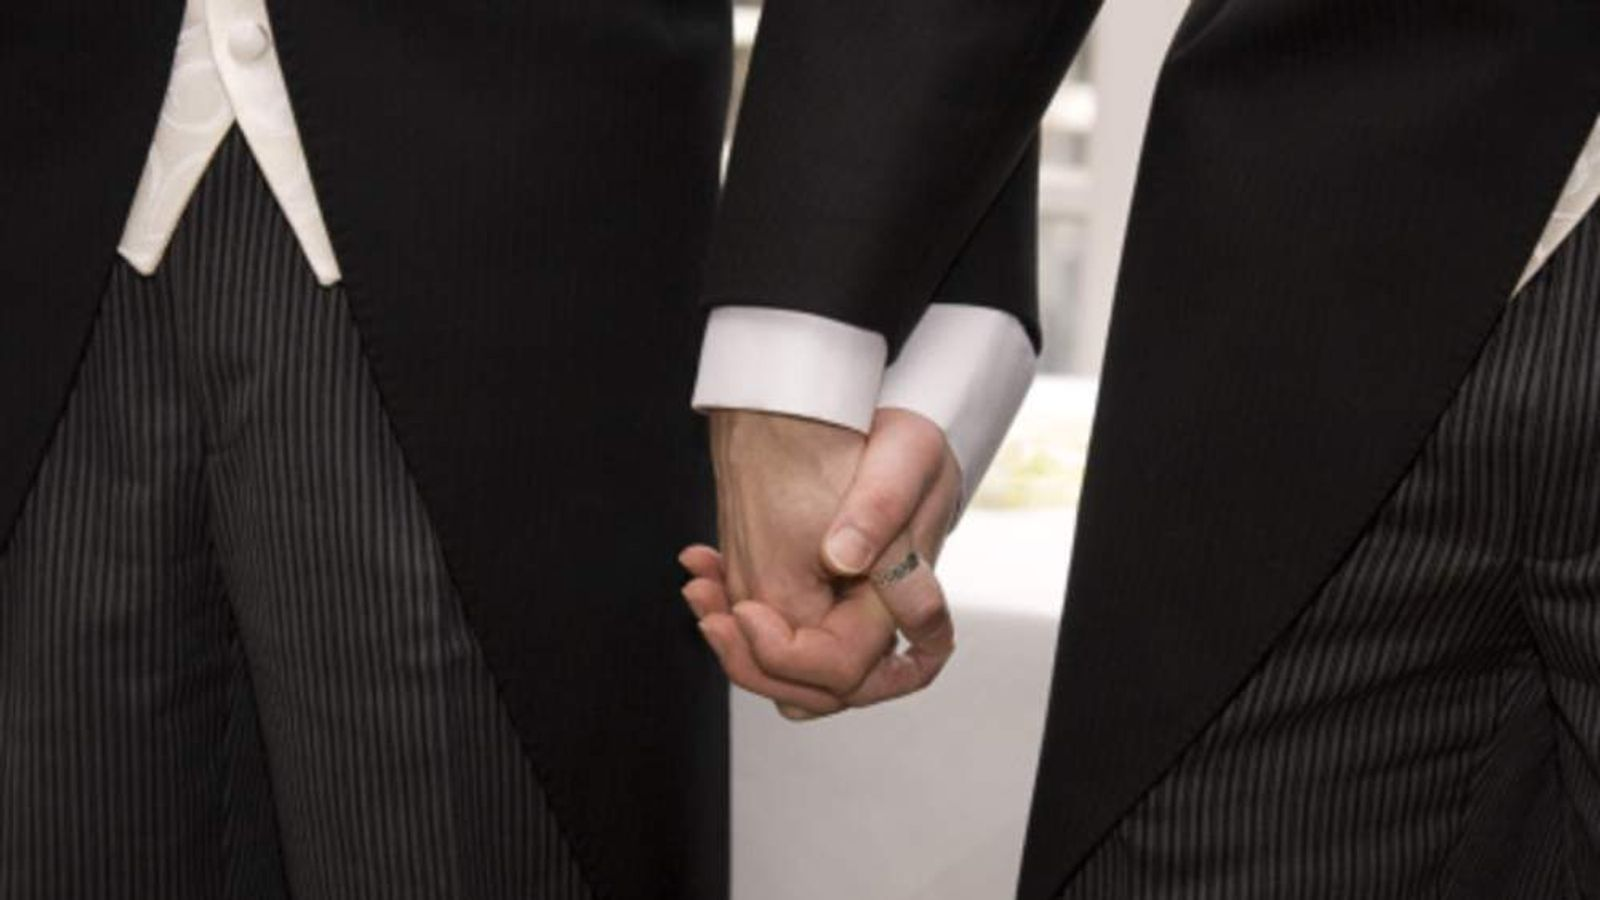 Senate panel to consider end of gay marriage ban